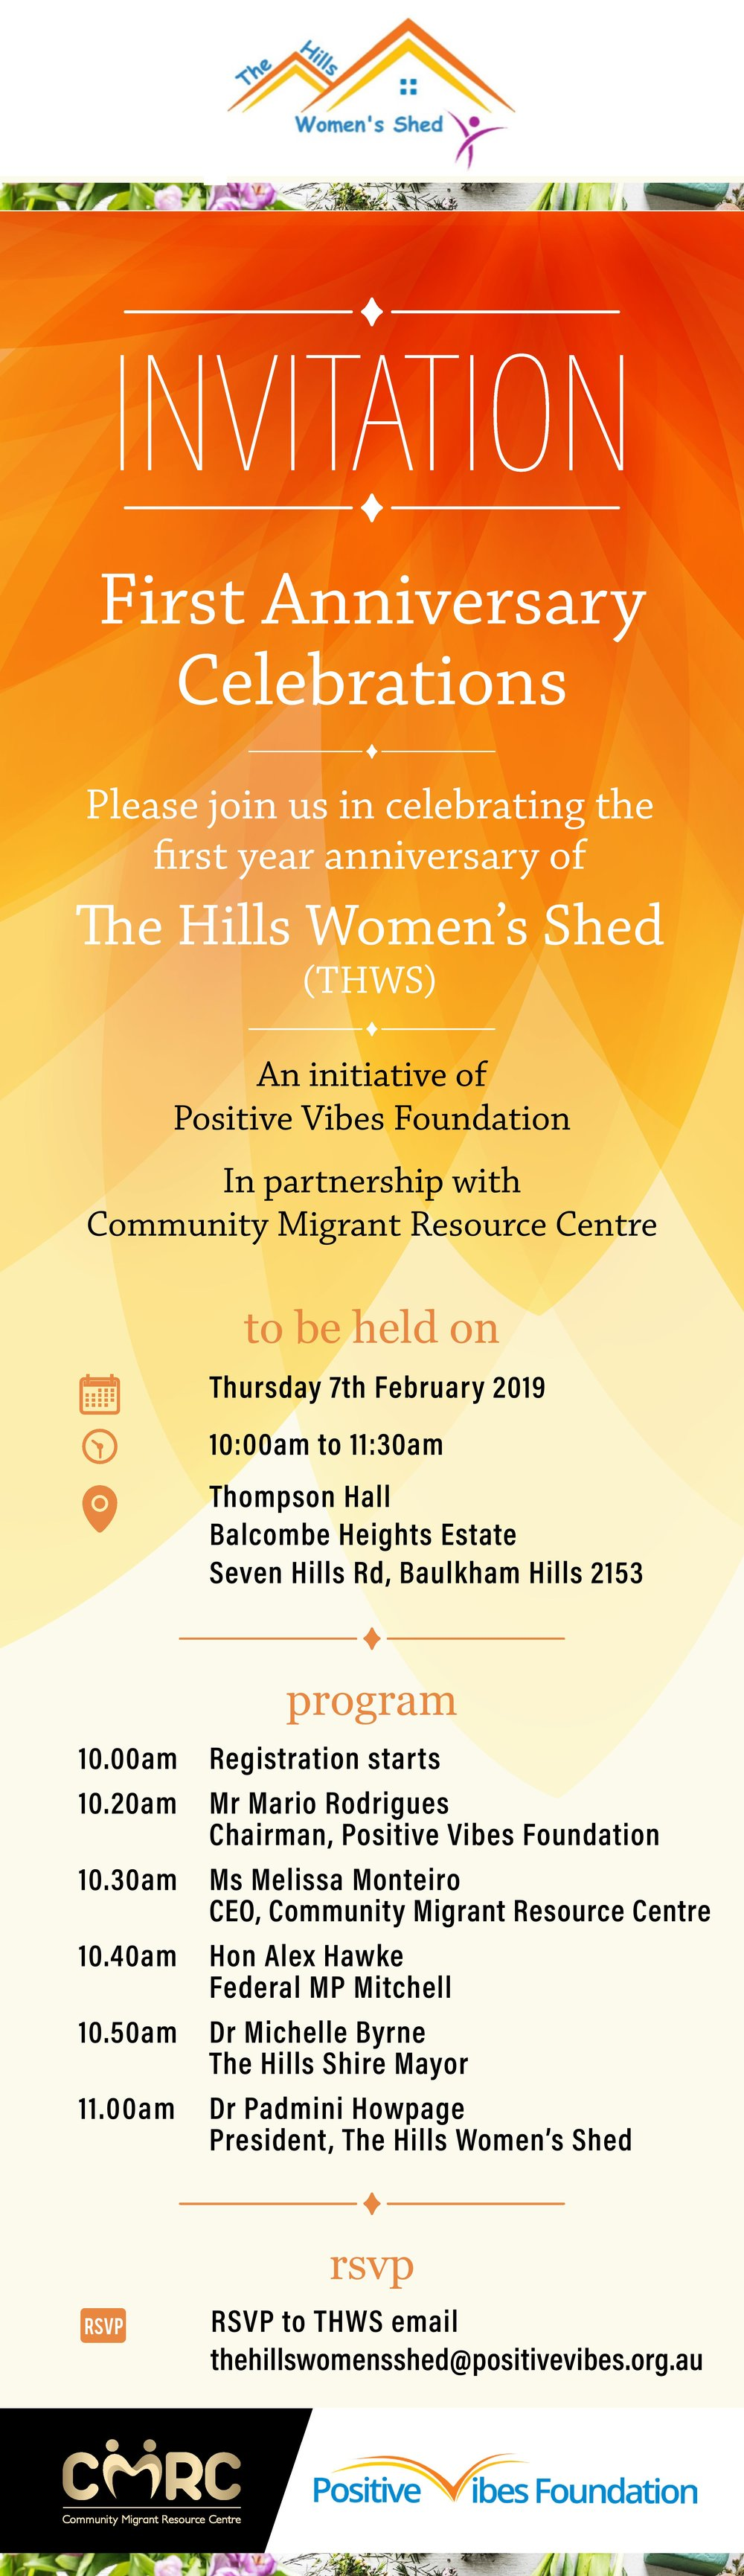 CMRC-The Hills Womens Shed-Invitation-page-001.jpg